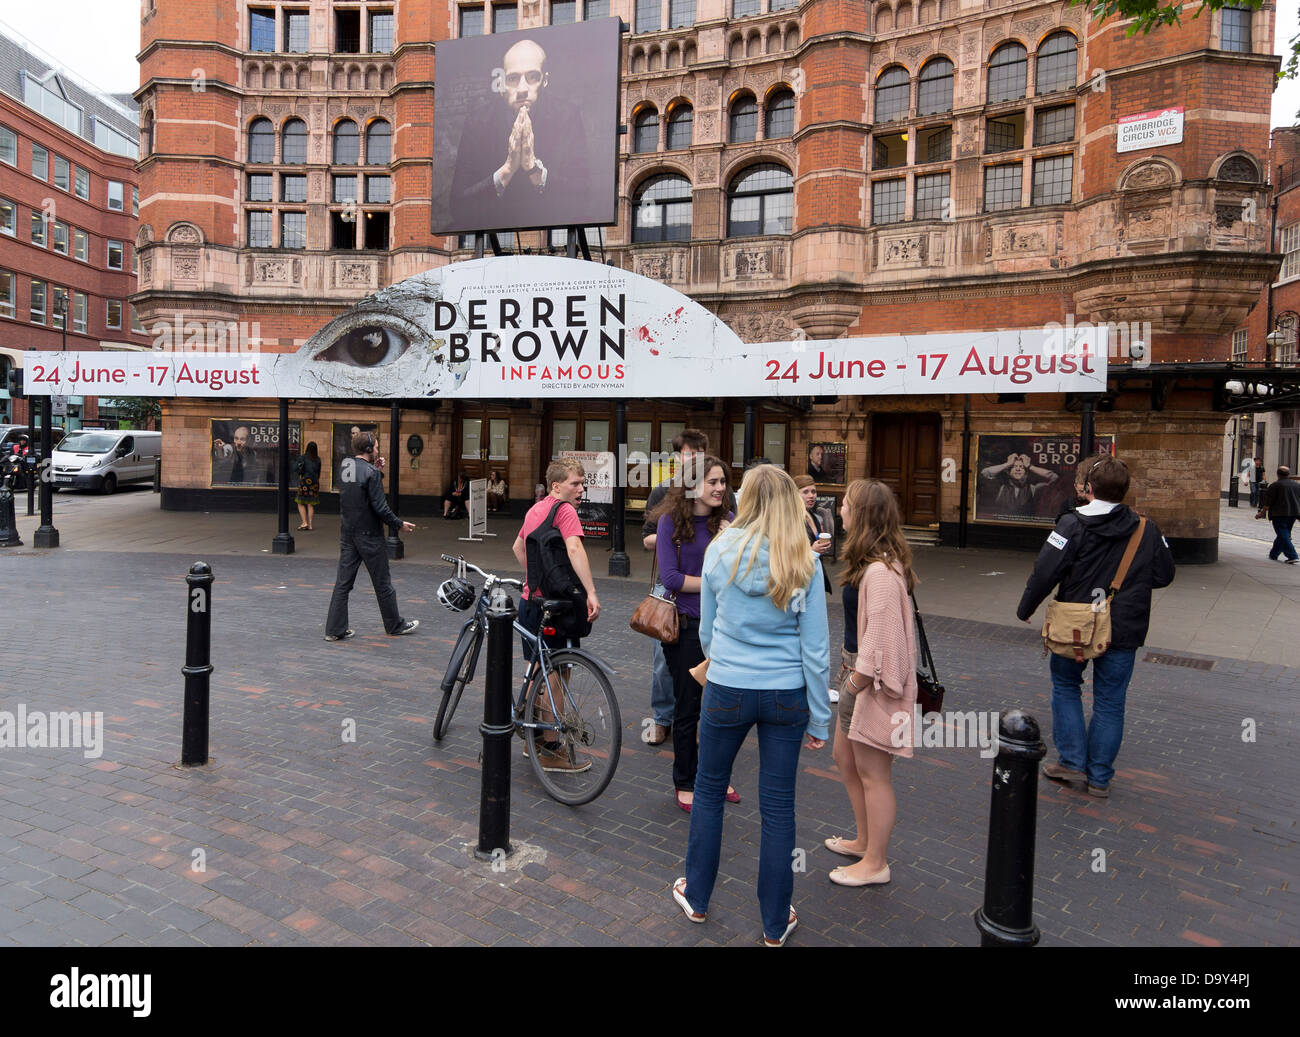 Palace Theatre, London - Derren Brown show - Infamous - Stock Image